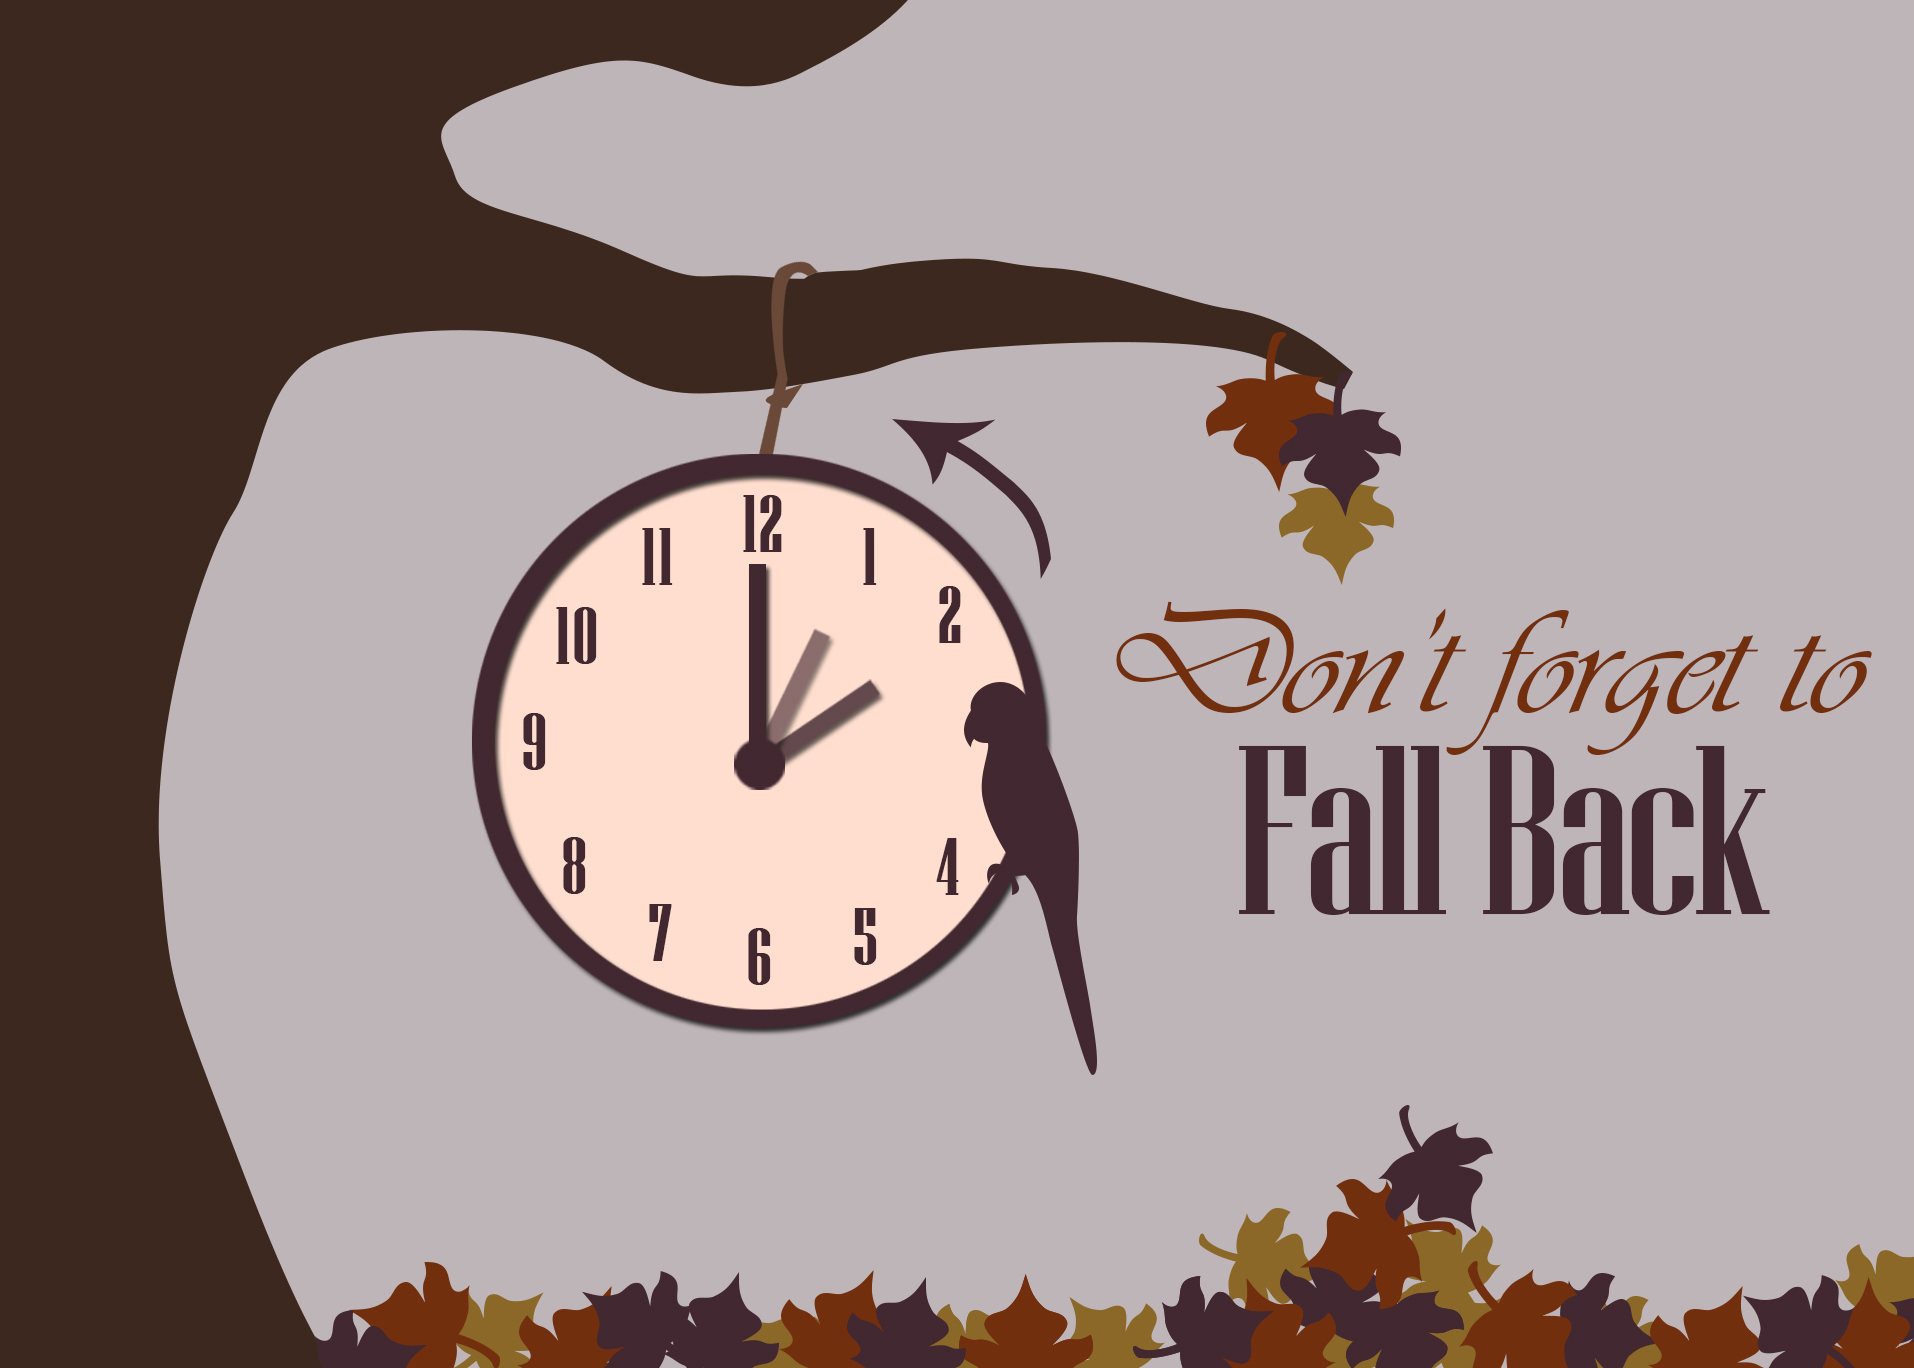 2016 clipart fall back, 2016 fall back Transparent FREE for.